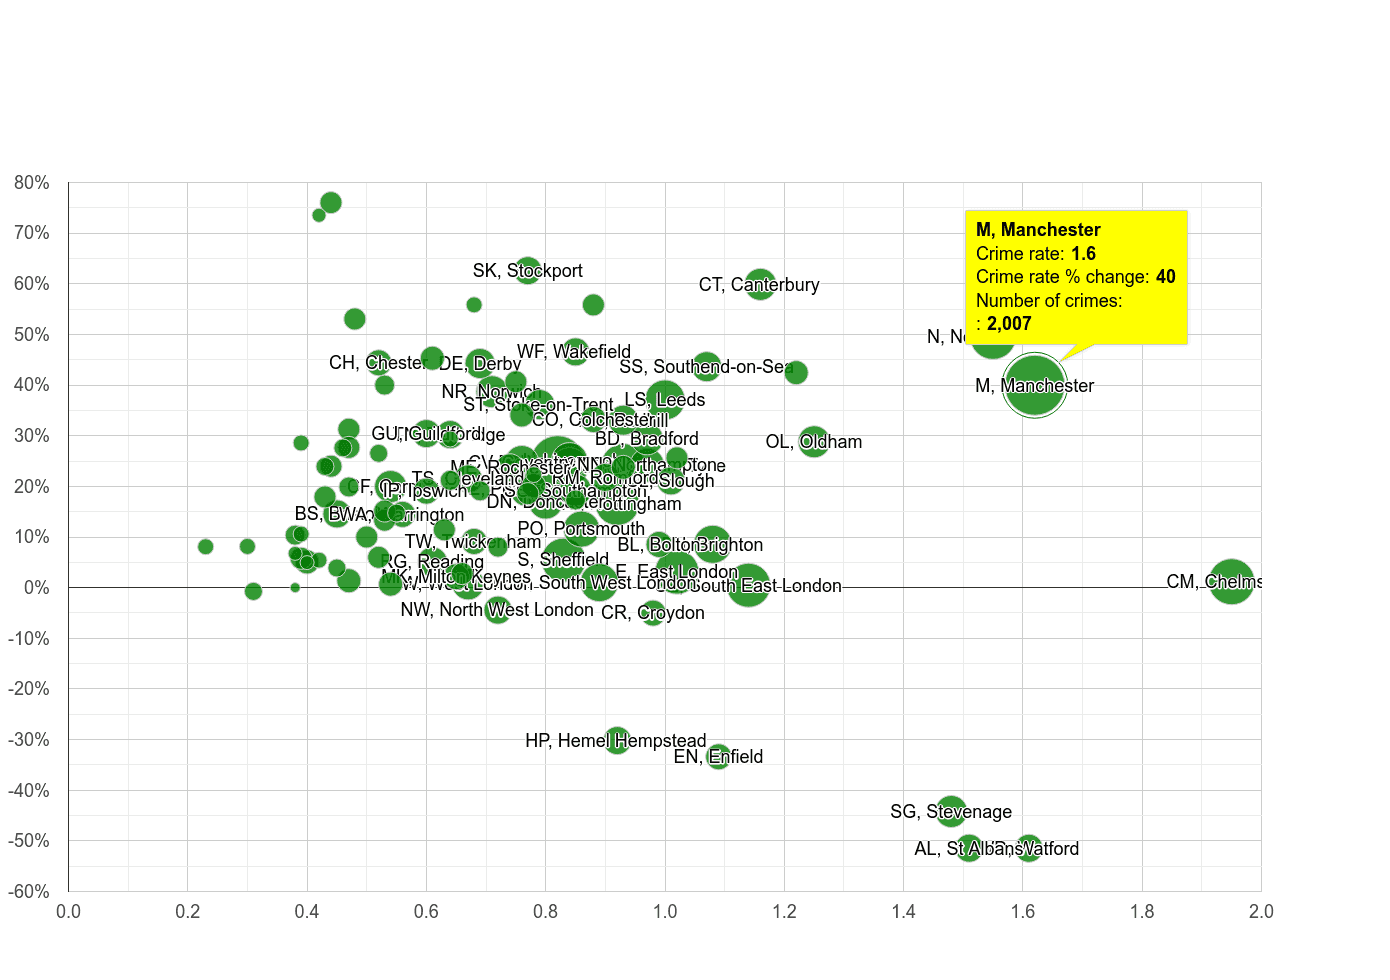 Manchester possession of weapons crime rate compared to other areas